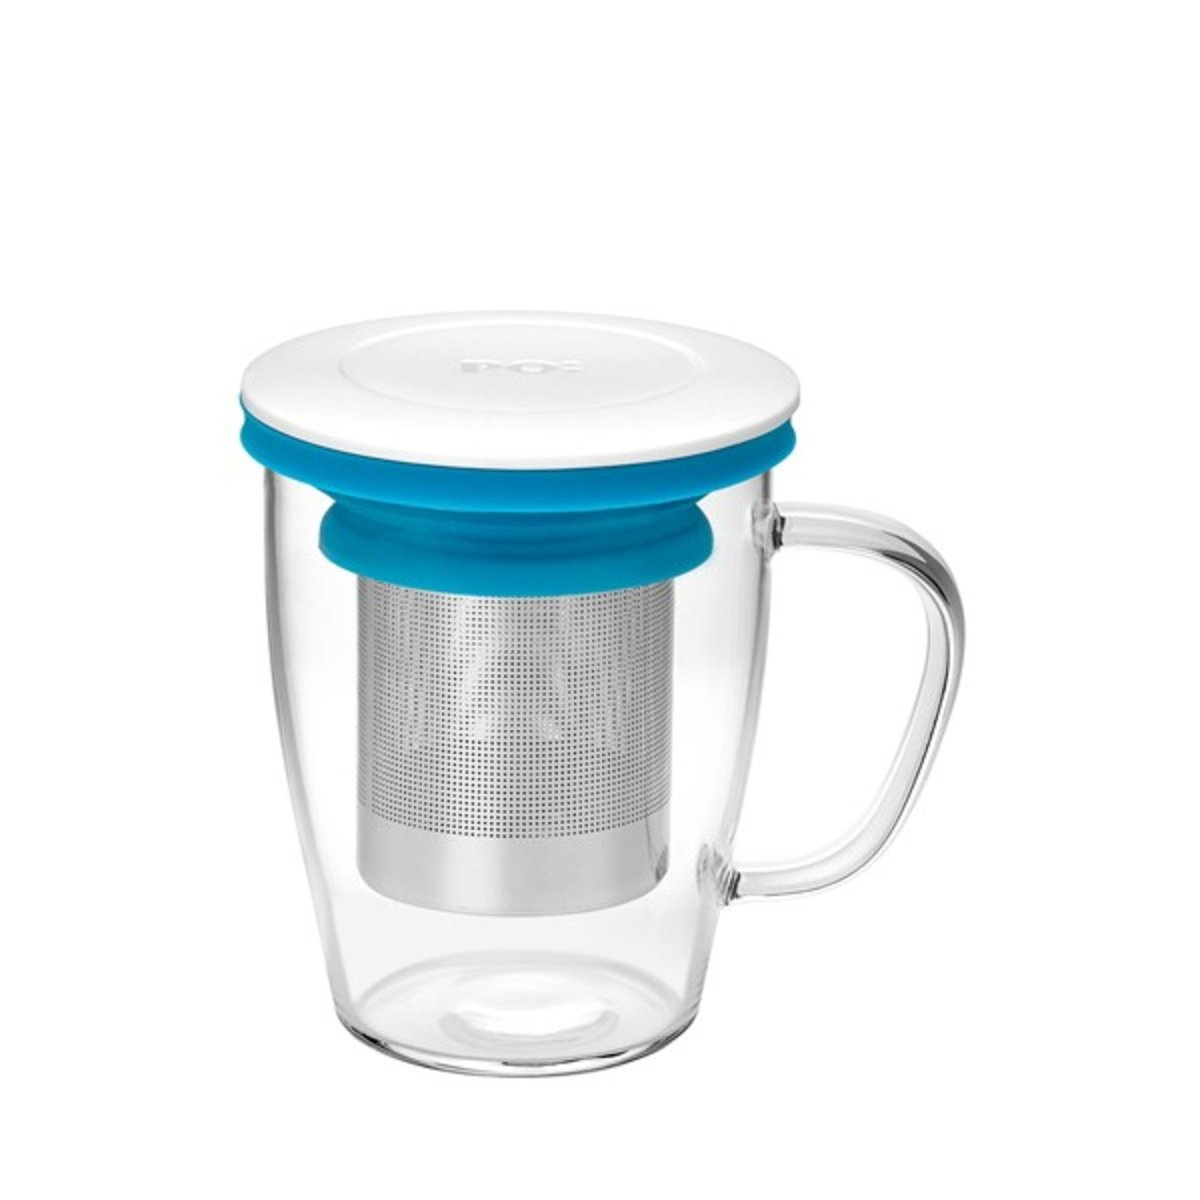 Ming Infuser Glass Mug (White Lid with Blue Ring)